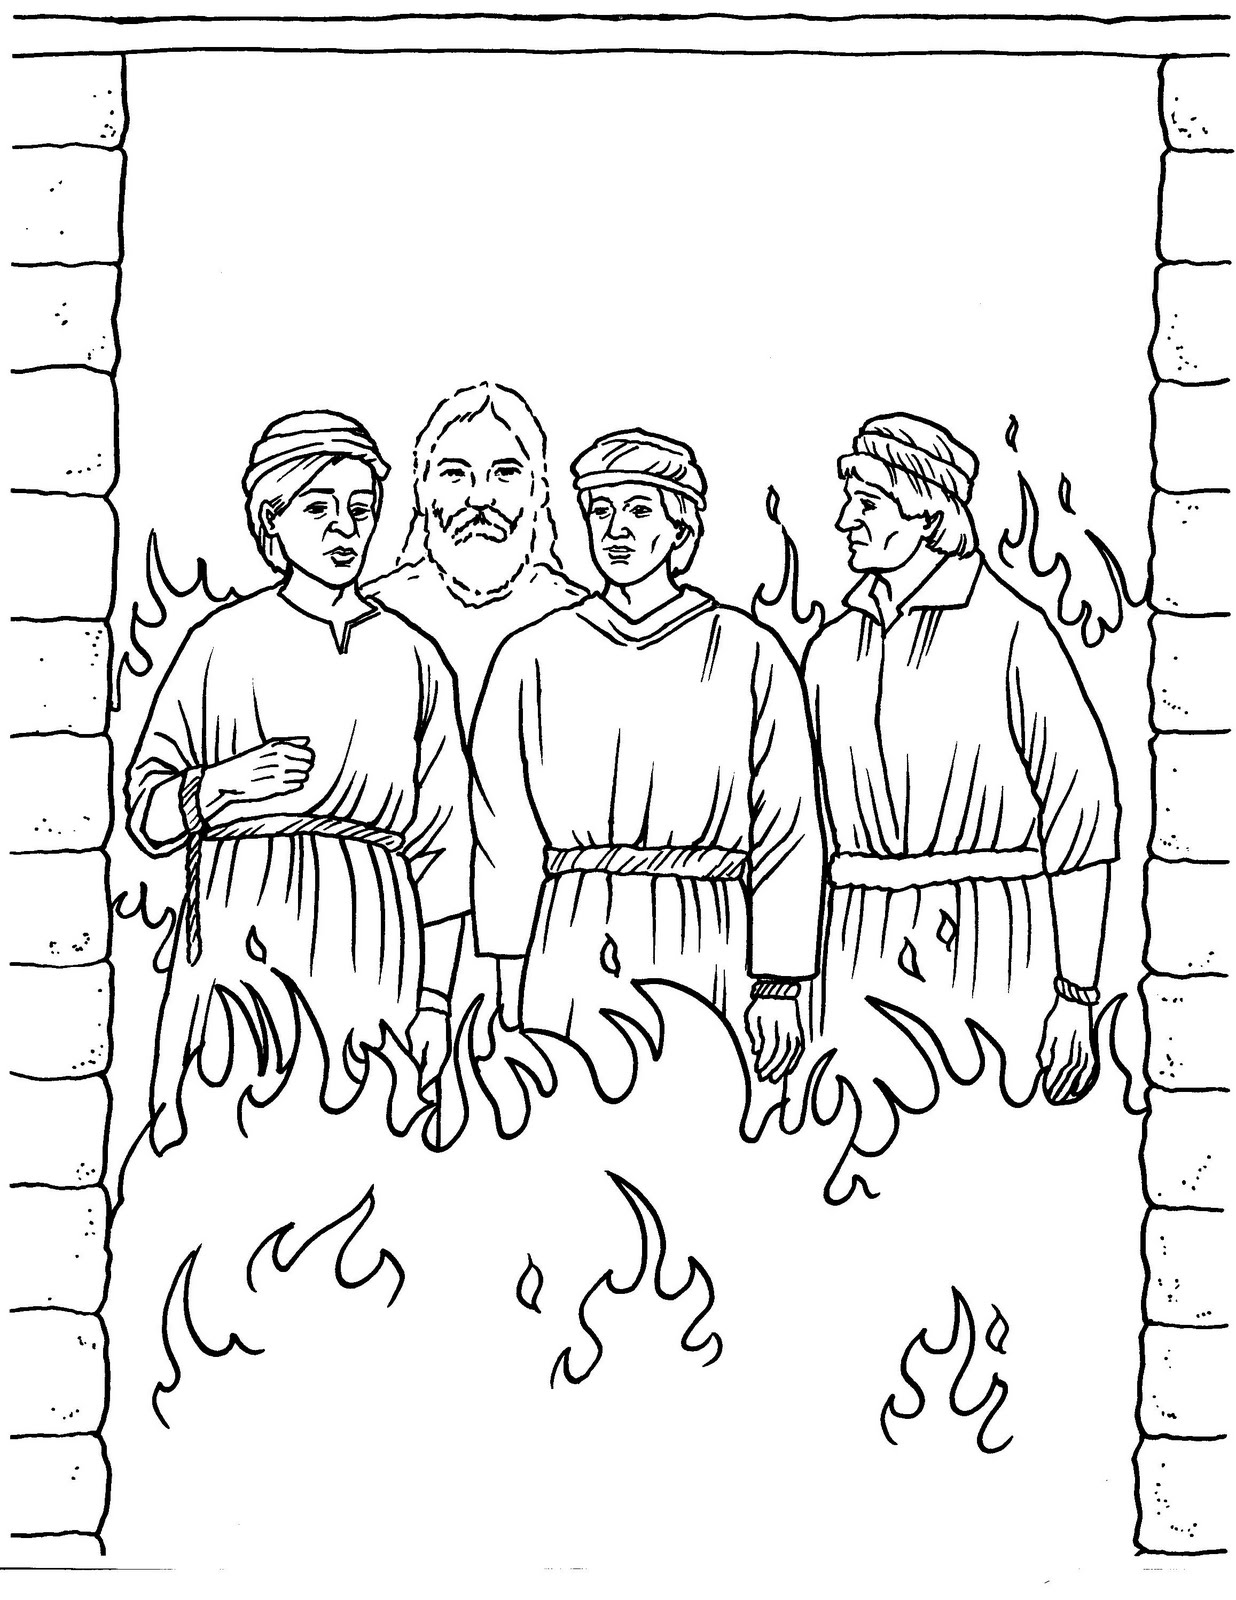 fiery furnace coloring page free bible coloring page shadrach meshach and abednego page coloring fiery furnace